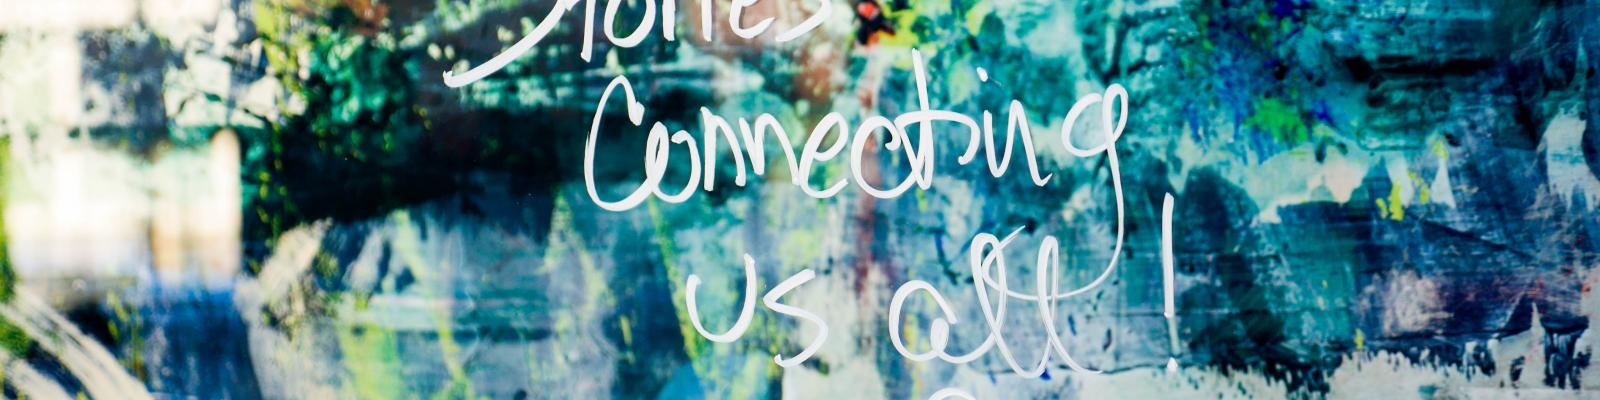 "Painting with ""Stories Connecting Us All"" in words"